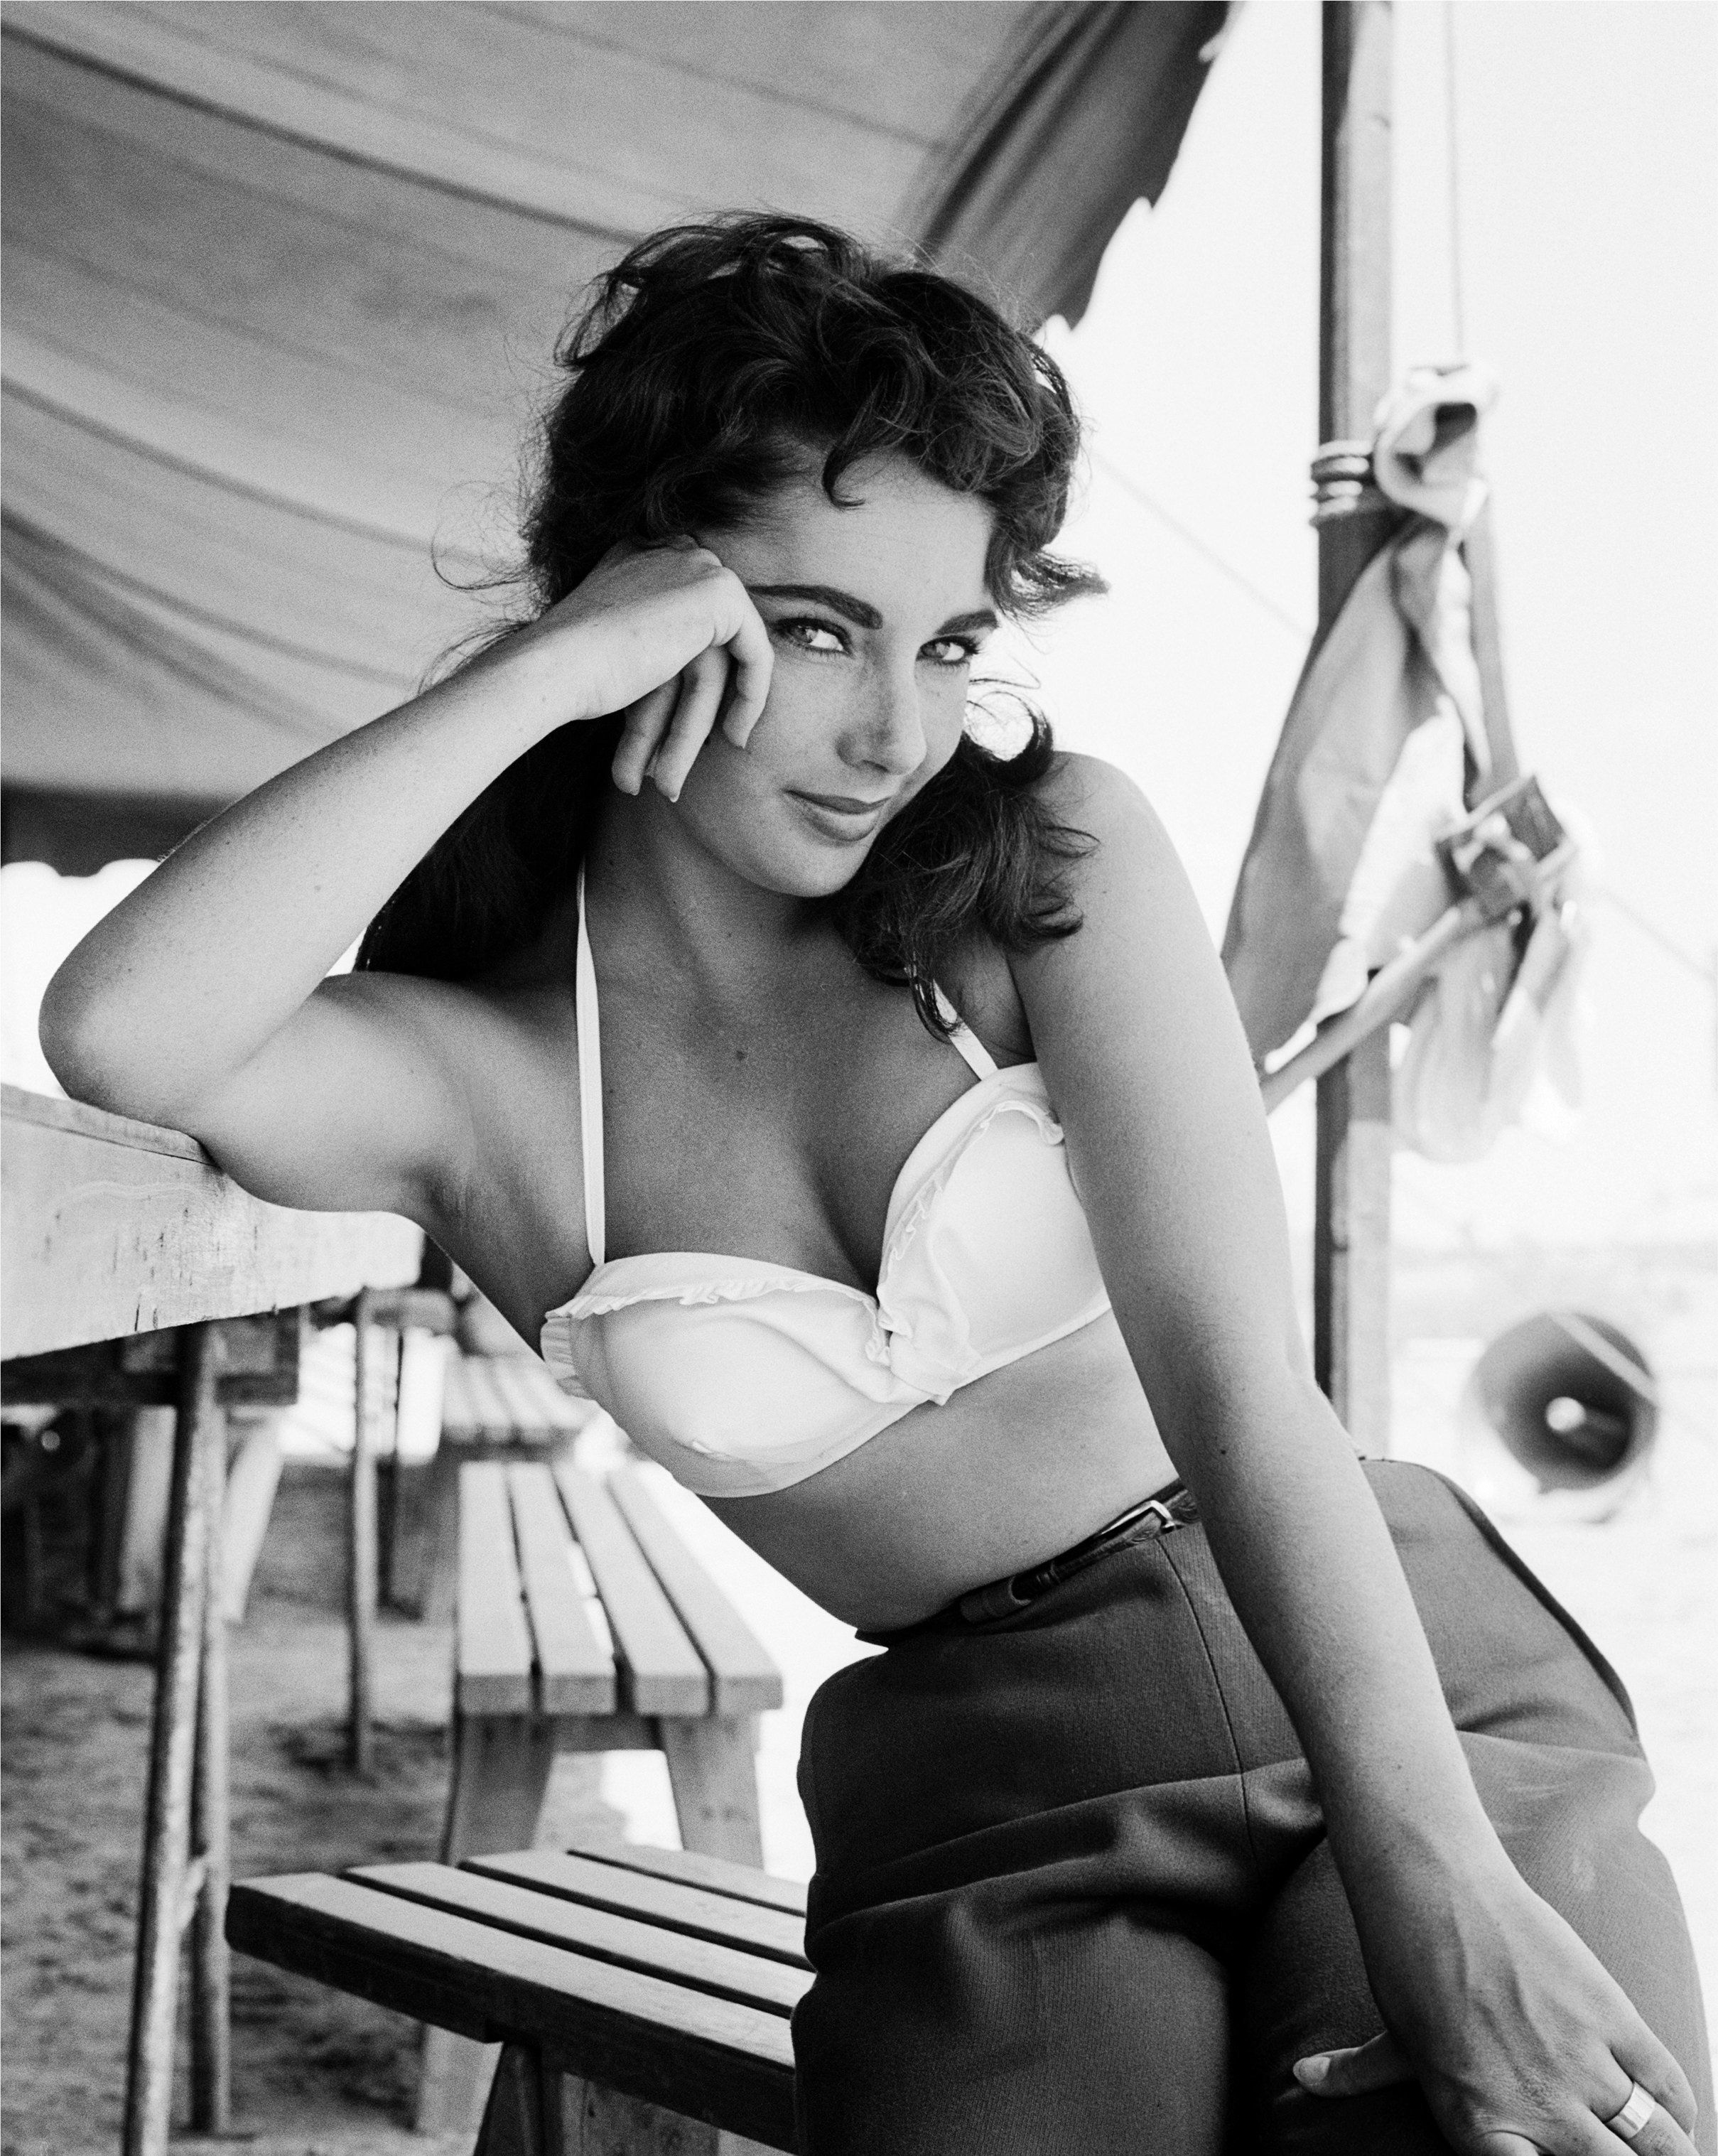 NOVEMBER 24:  Actress Elizabeth Taylor poses for a portrait on the set of the movie 'Giant' which was released on November 24, 1956. (Photo by Frank Worth, Courtesy of Capital Art/Getty Images)